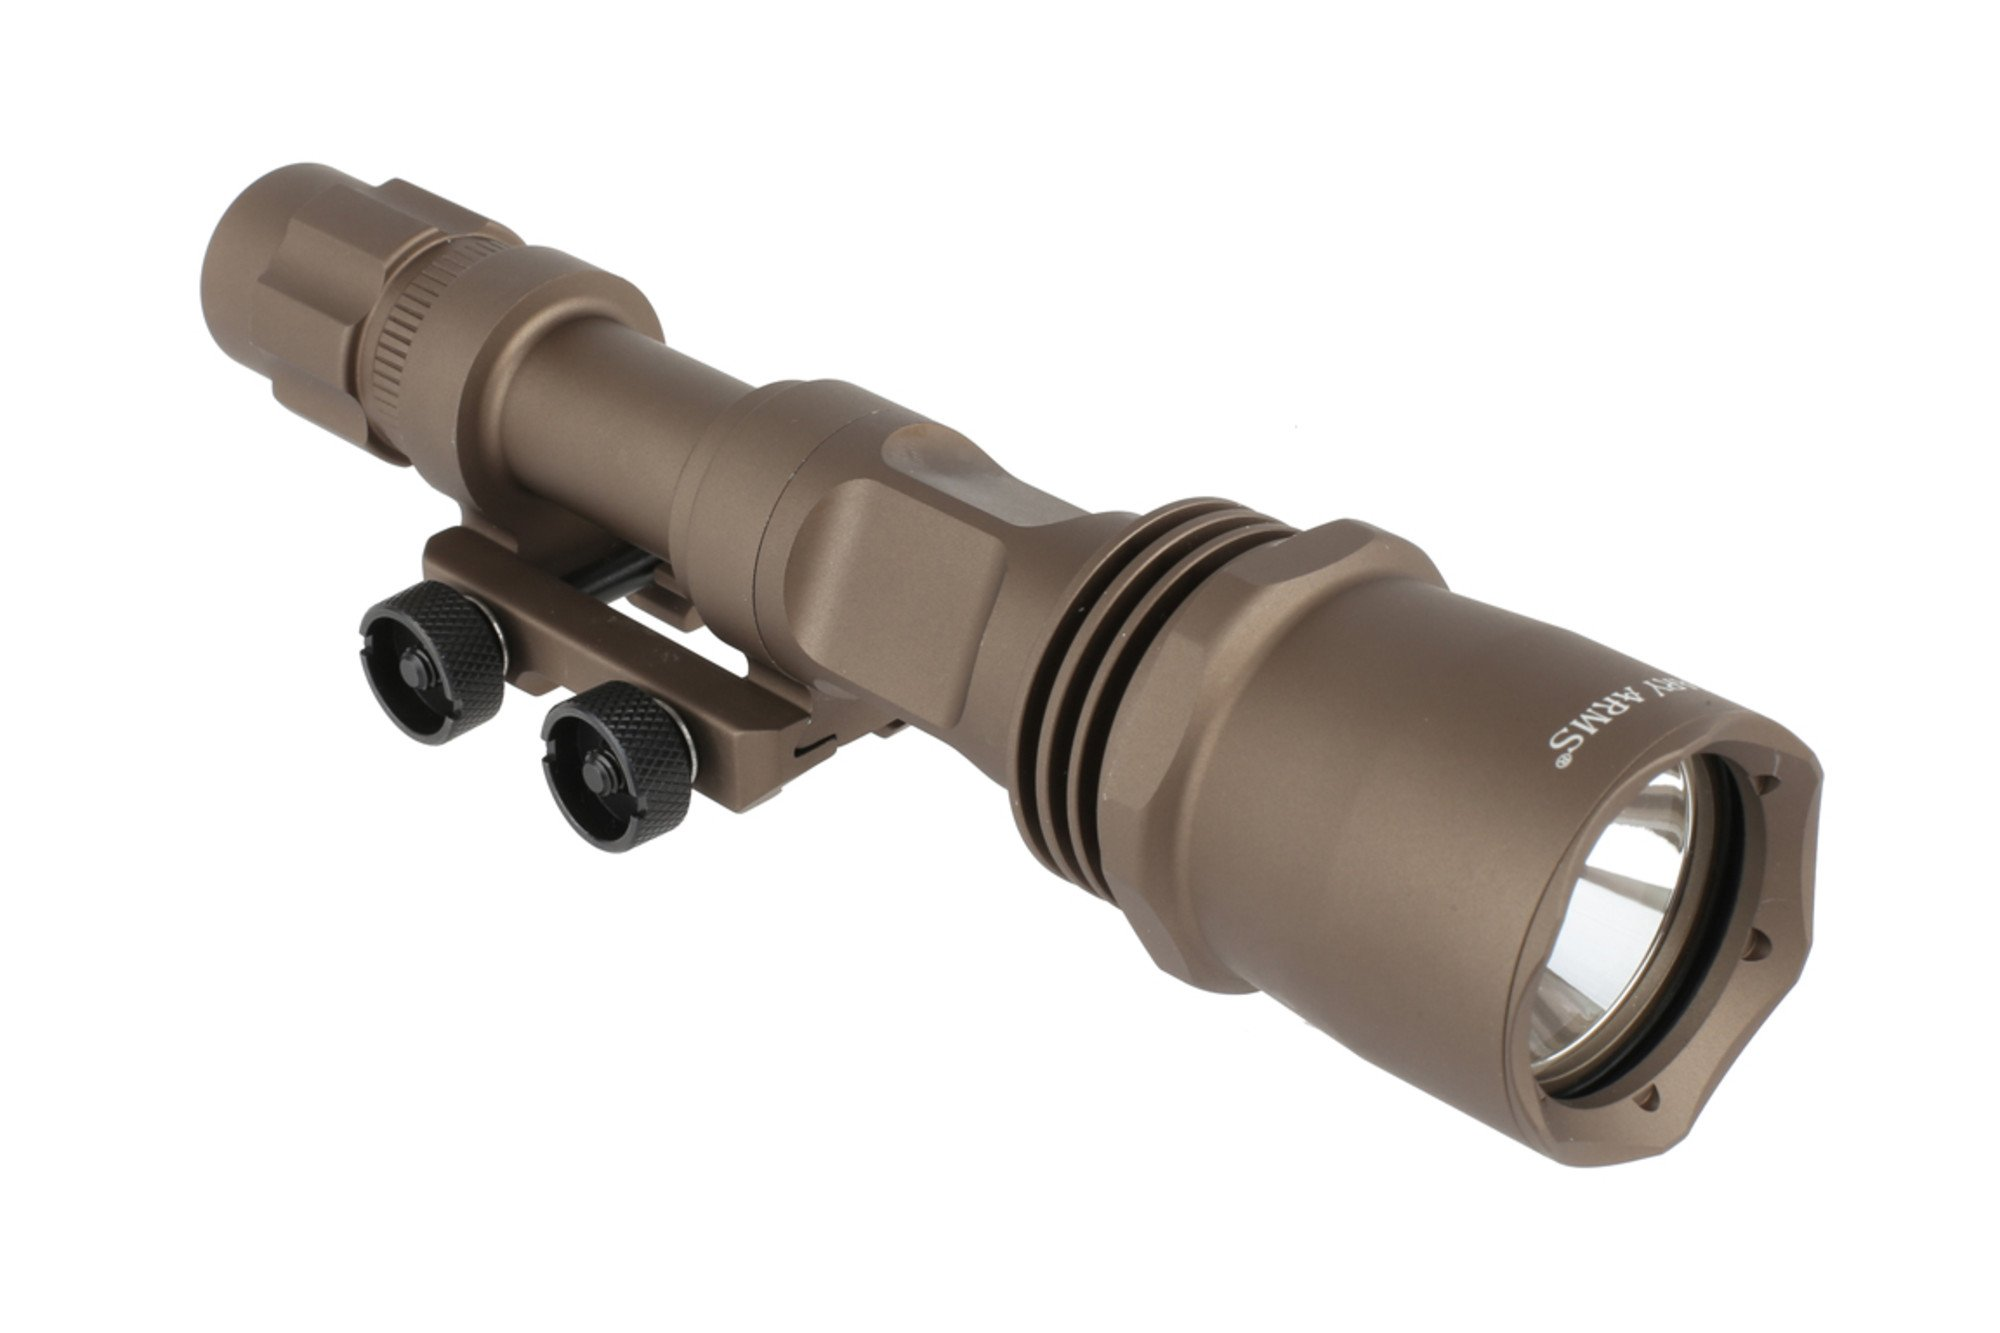 Primary Arms Aluminum Ultimate Tactical Weapon Light 900 Lumens Brightness GEN IV - Flat Dark Earth